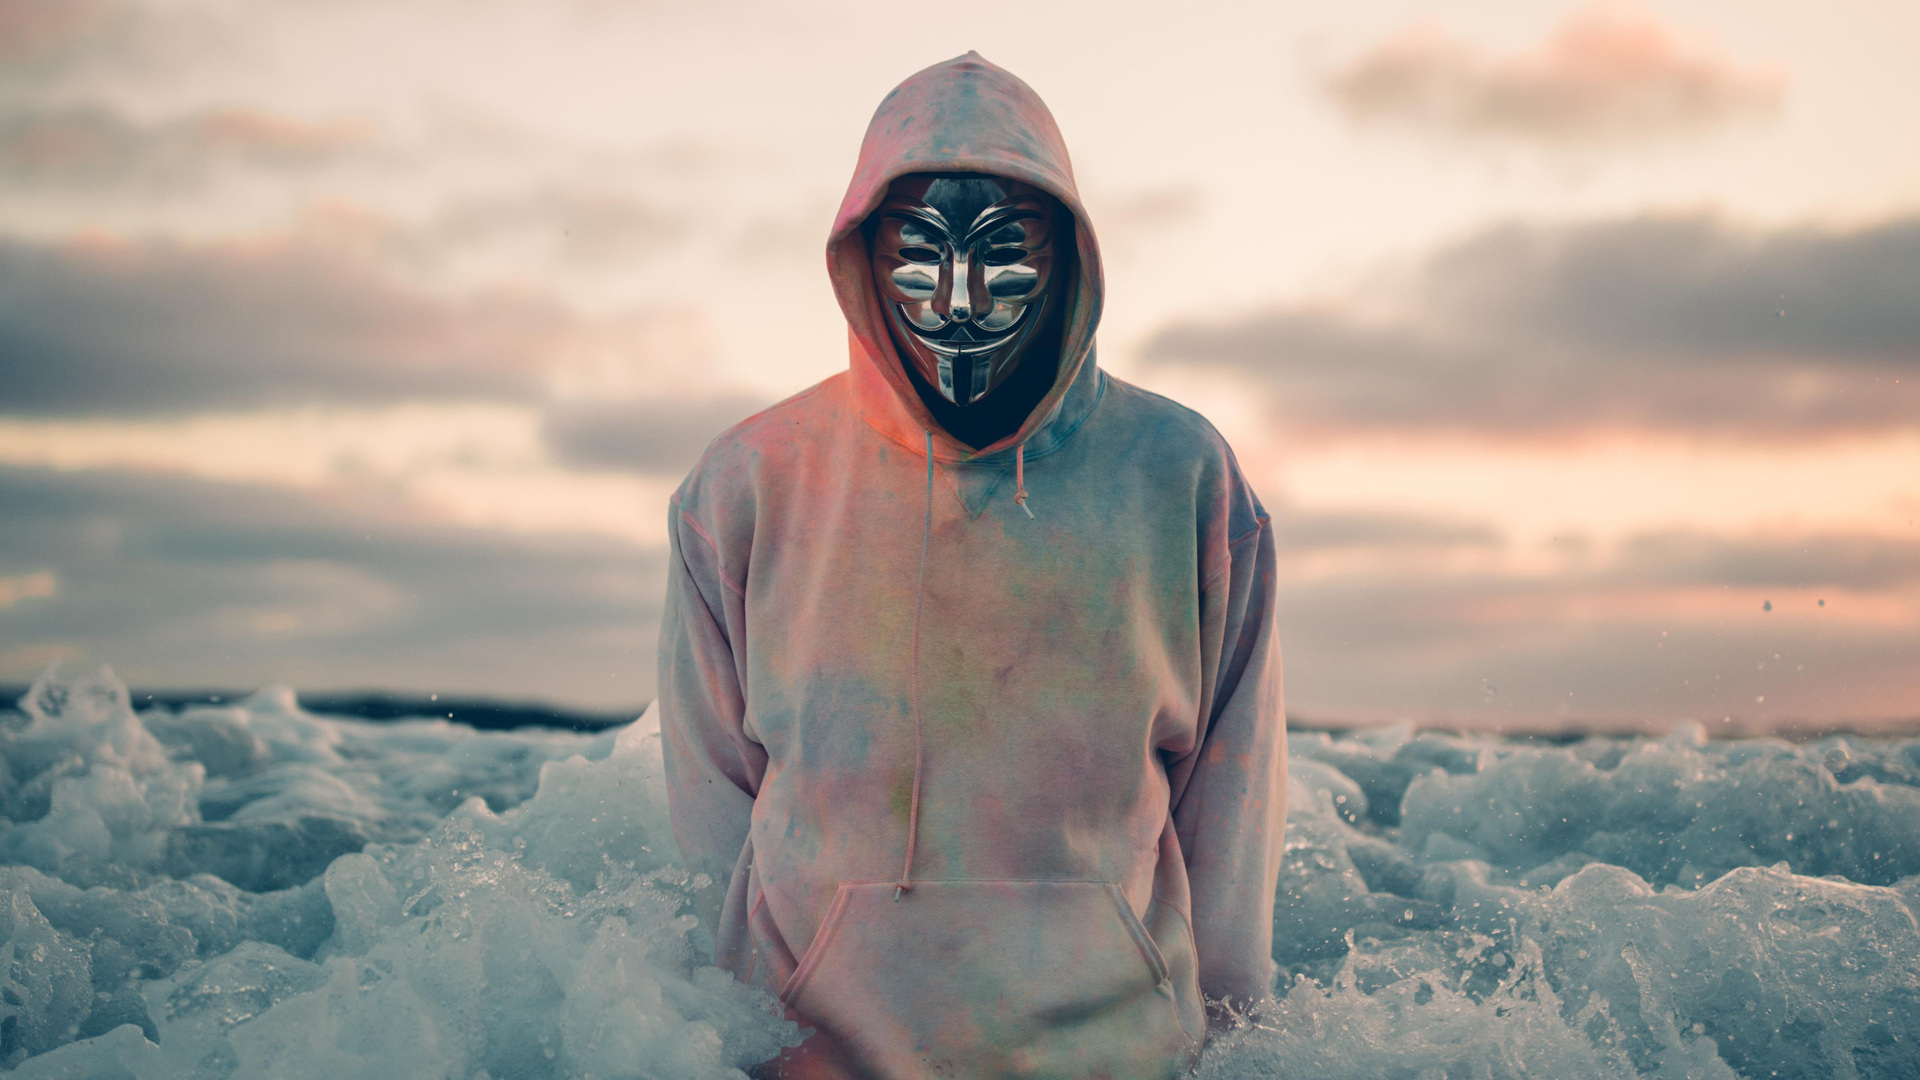 1920x1080 anonymous laptop full hd 1080p hd 4k wallpapers - Anonymous wallpaper full hd ...